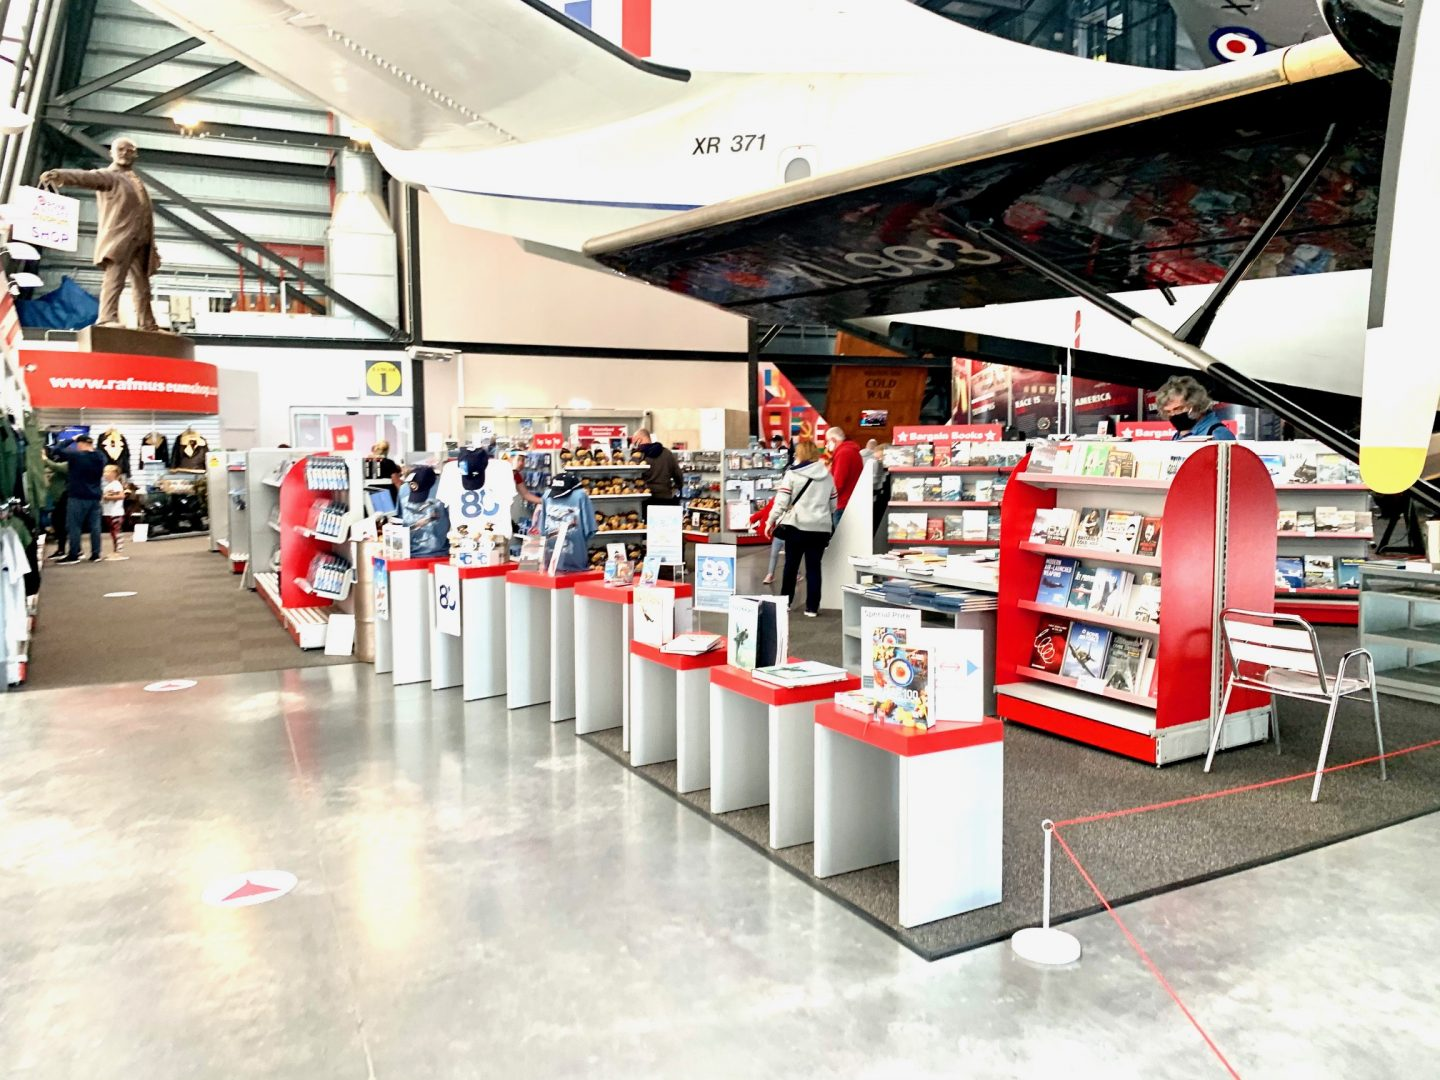 Shop area at Cosford RAF Museum